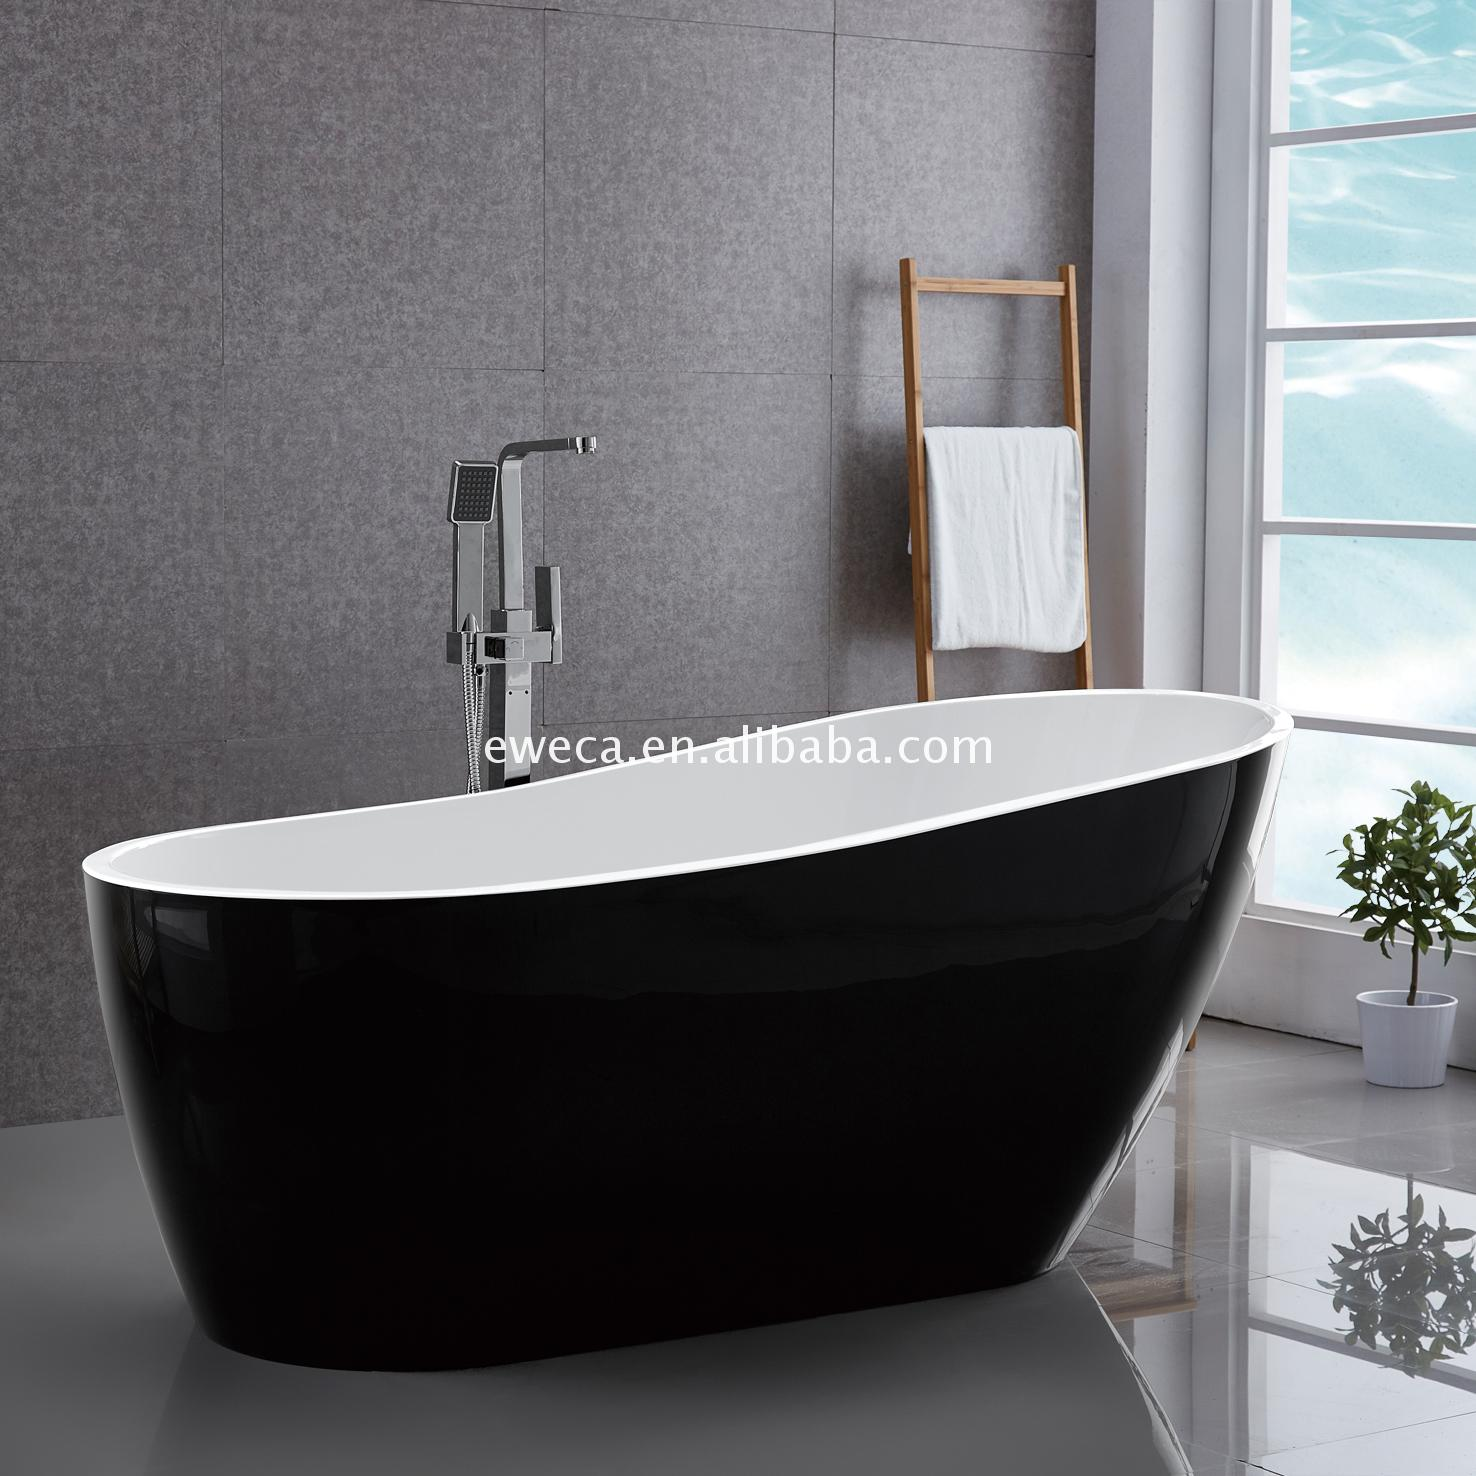 Indoor Spa Baths, Indoor Spa Baths Suppliers and Manufacturers at ...